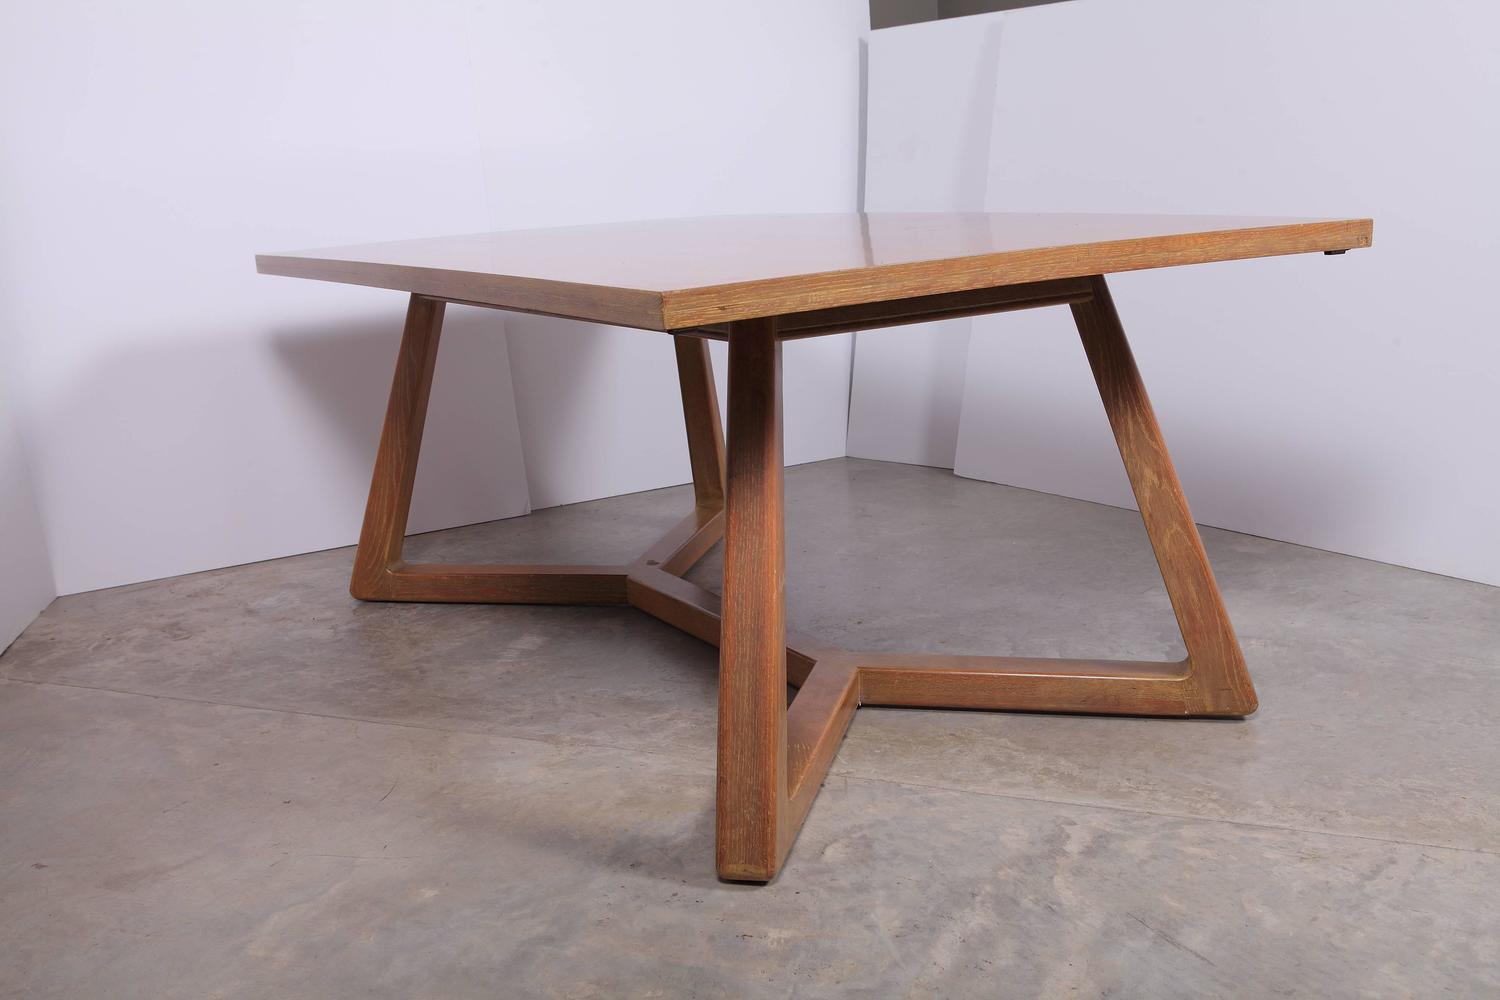 Mid 20th century limed oak romweber dining table designed by harold schwartz for sale at 1stdibs - Limed oak dining tables ...